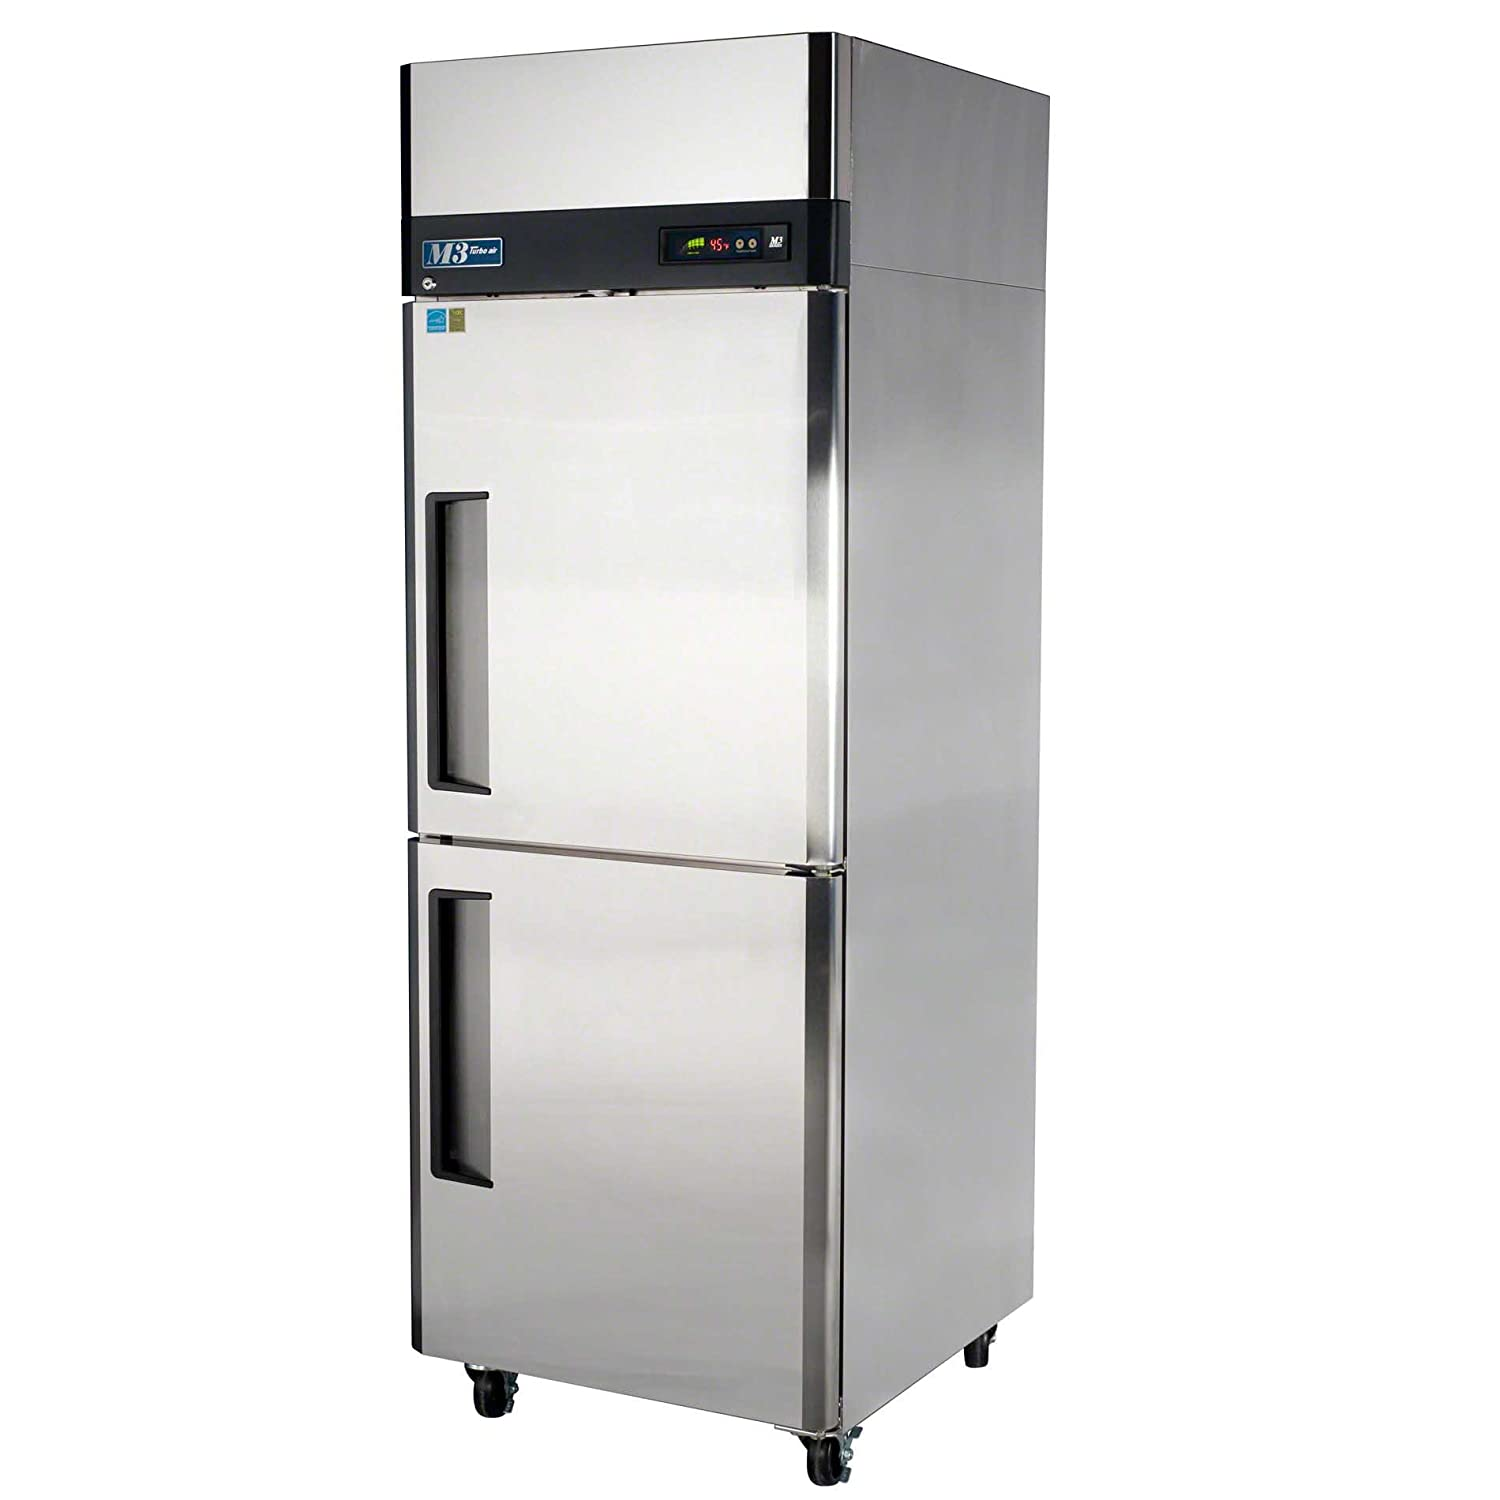 Turbo Air M3F24-2 2 Half Doors Reach-In Freezer